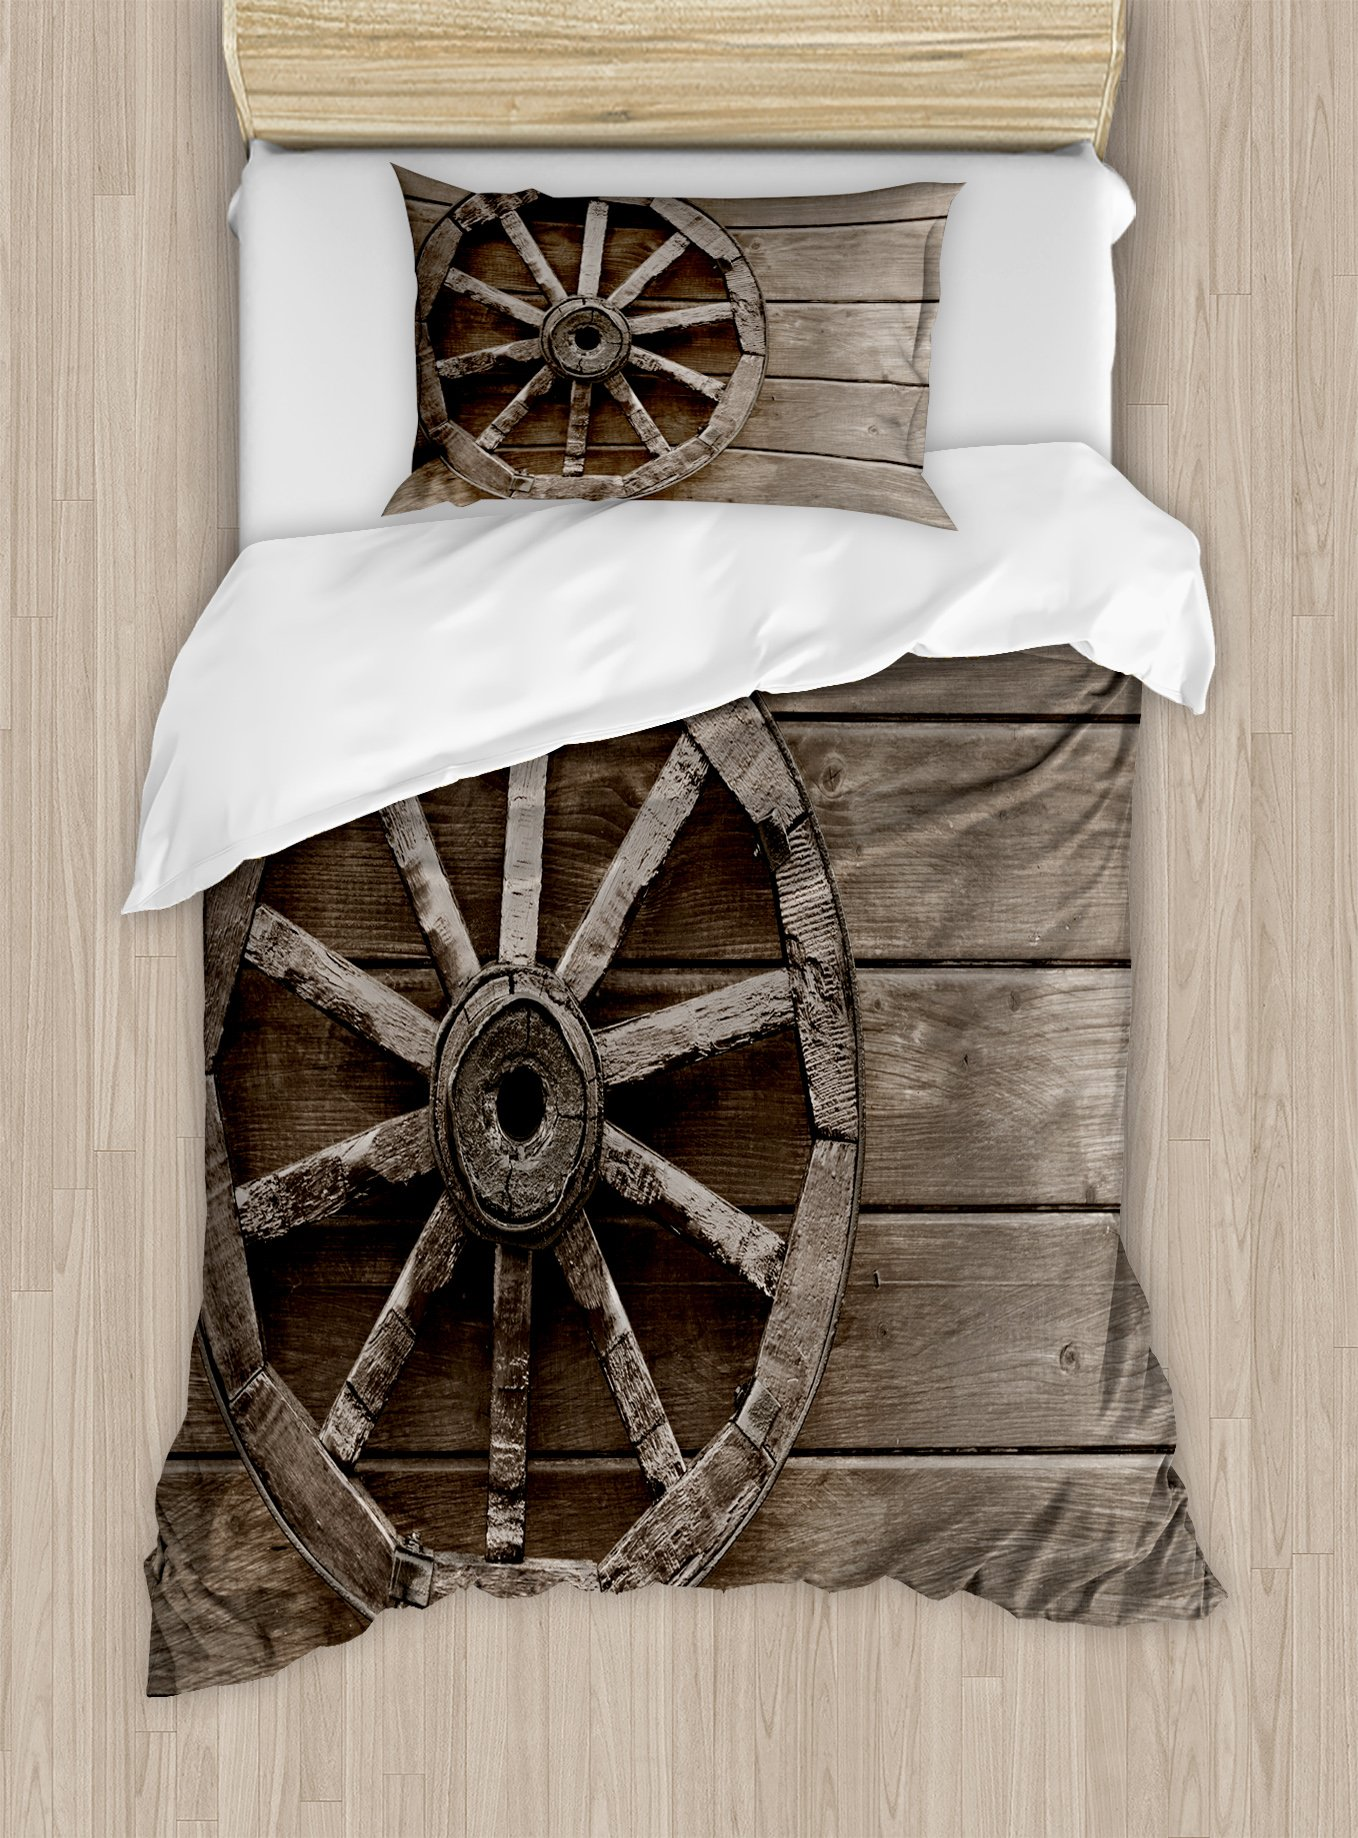 Ambesonne Barn Wood Wagon Wheel Duvet Cover Set Twin Size, Antique Aged Carriage Vehicle Wheel on The Wall of Barn Grunge Western, Decorative 2 Piece Bedding Set with 1 Pillow Sham, Umber